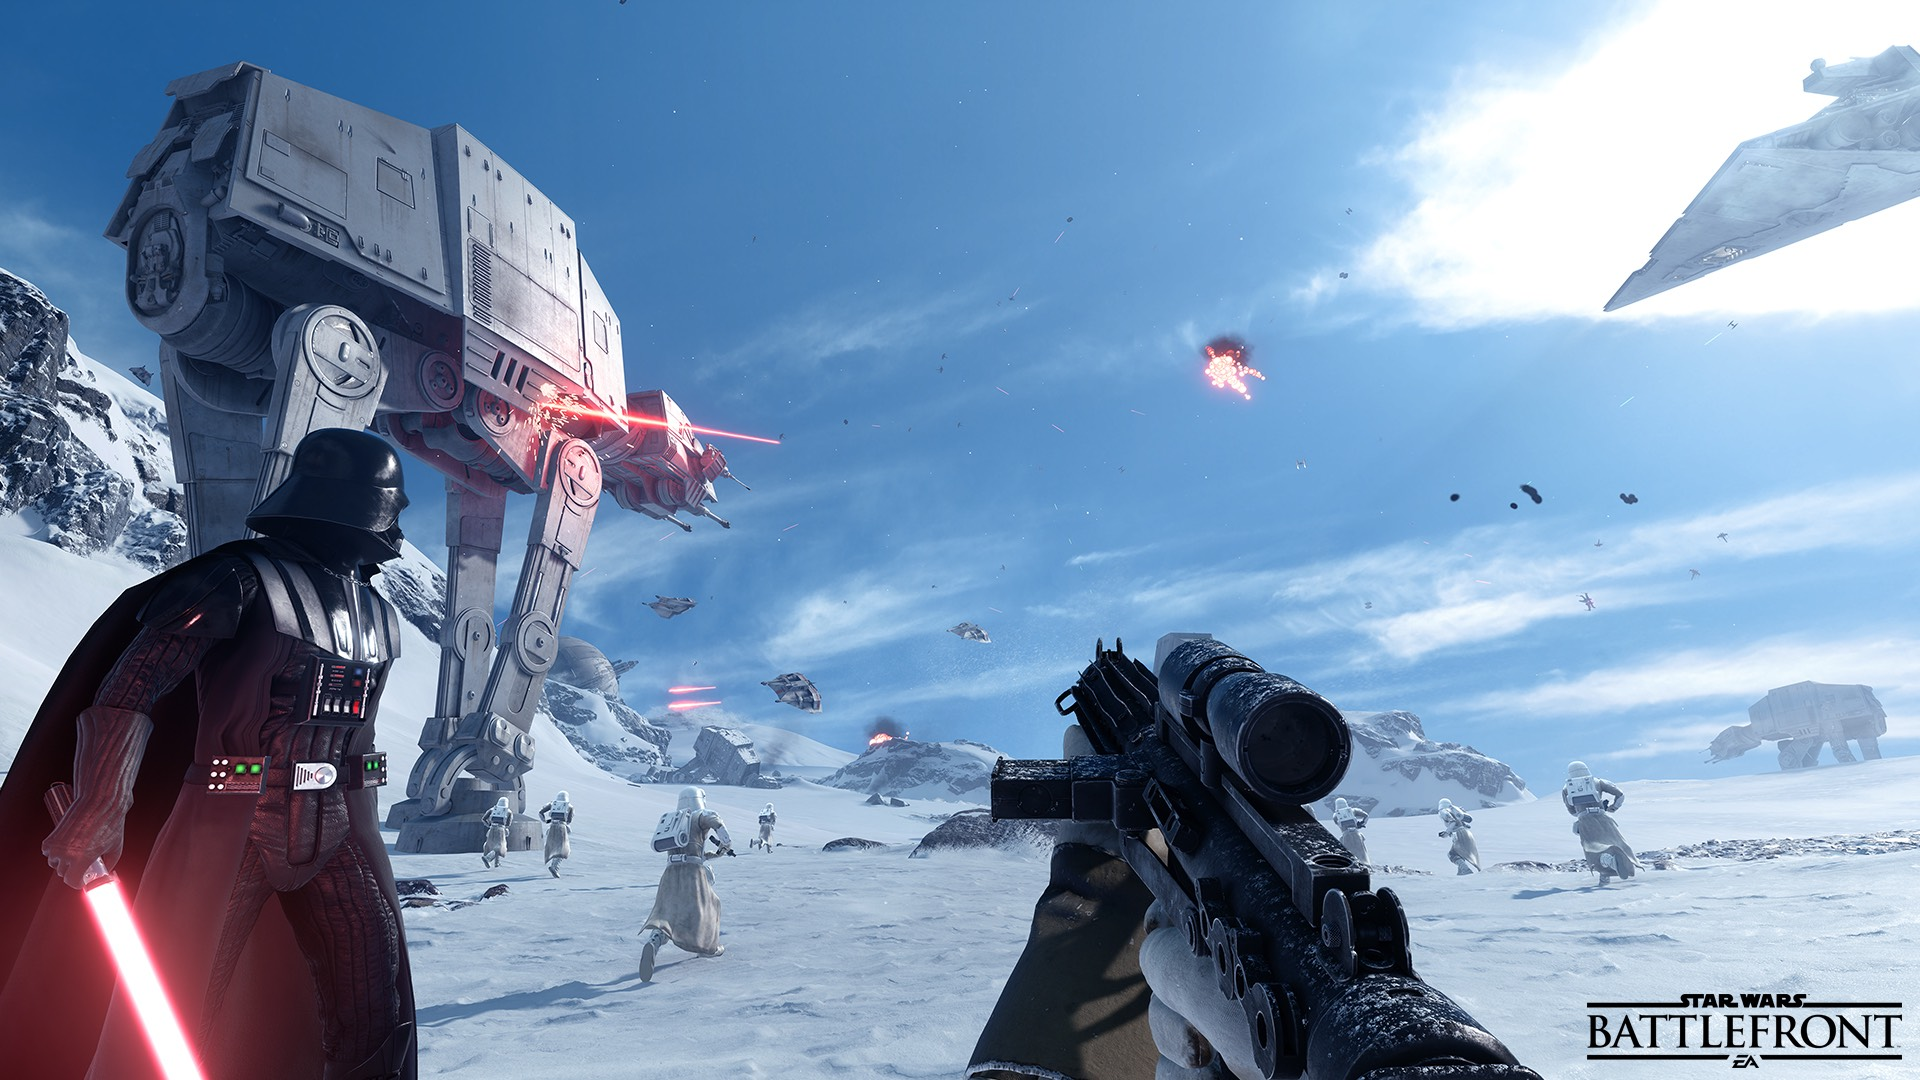 Star Wars Battlefront 1.01 Patch Notes Revealed